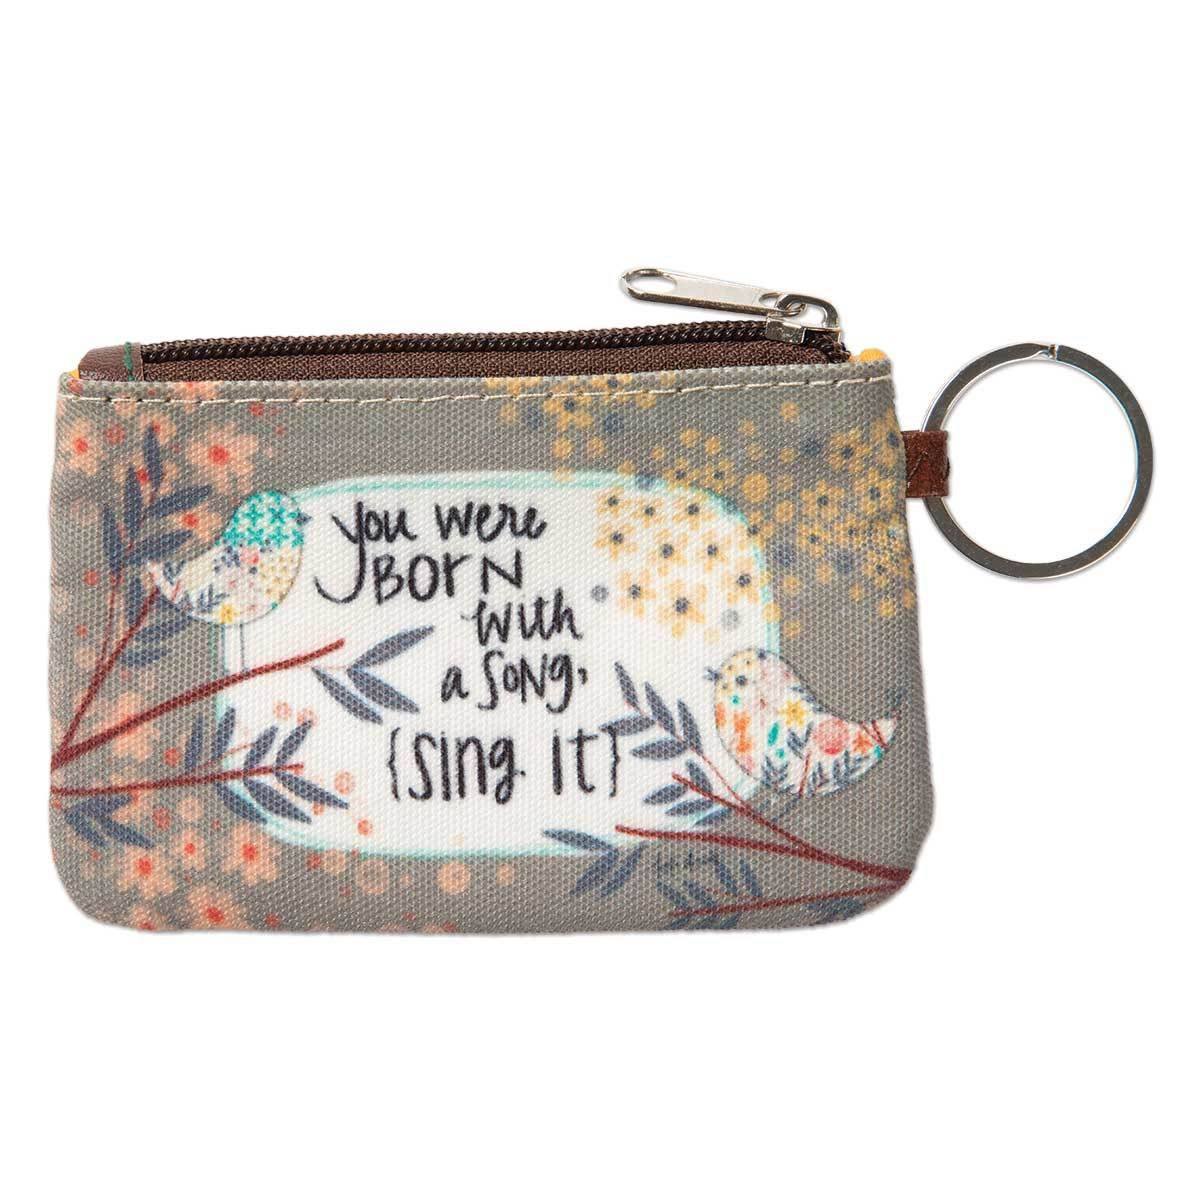 338fed424017 Sing It ID Wallet Keychain   Products   Id wallet, Coin purse ...